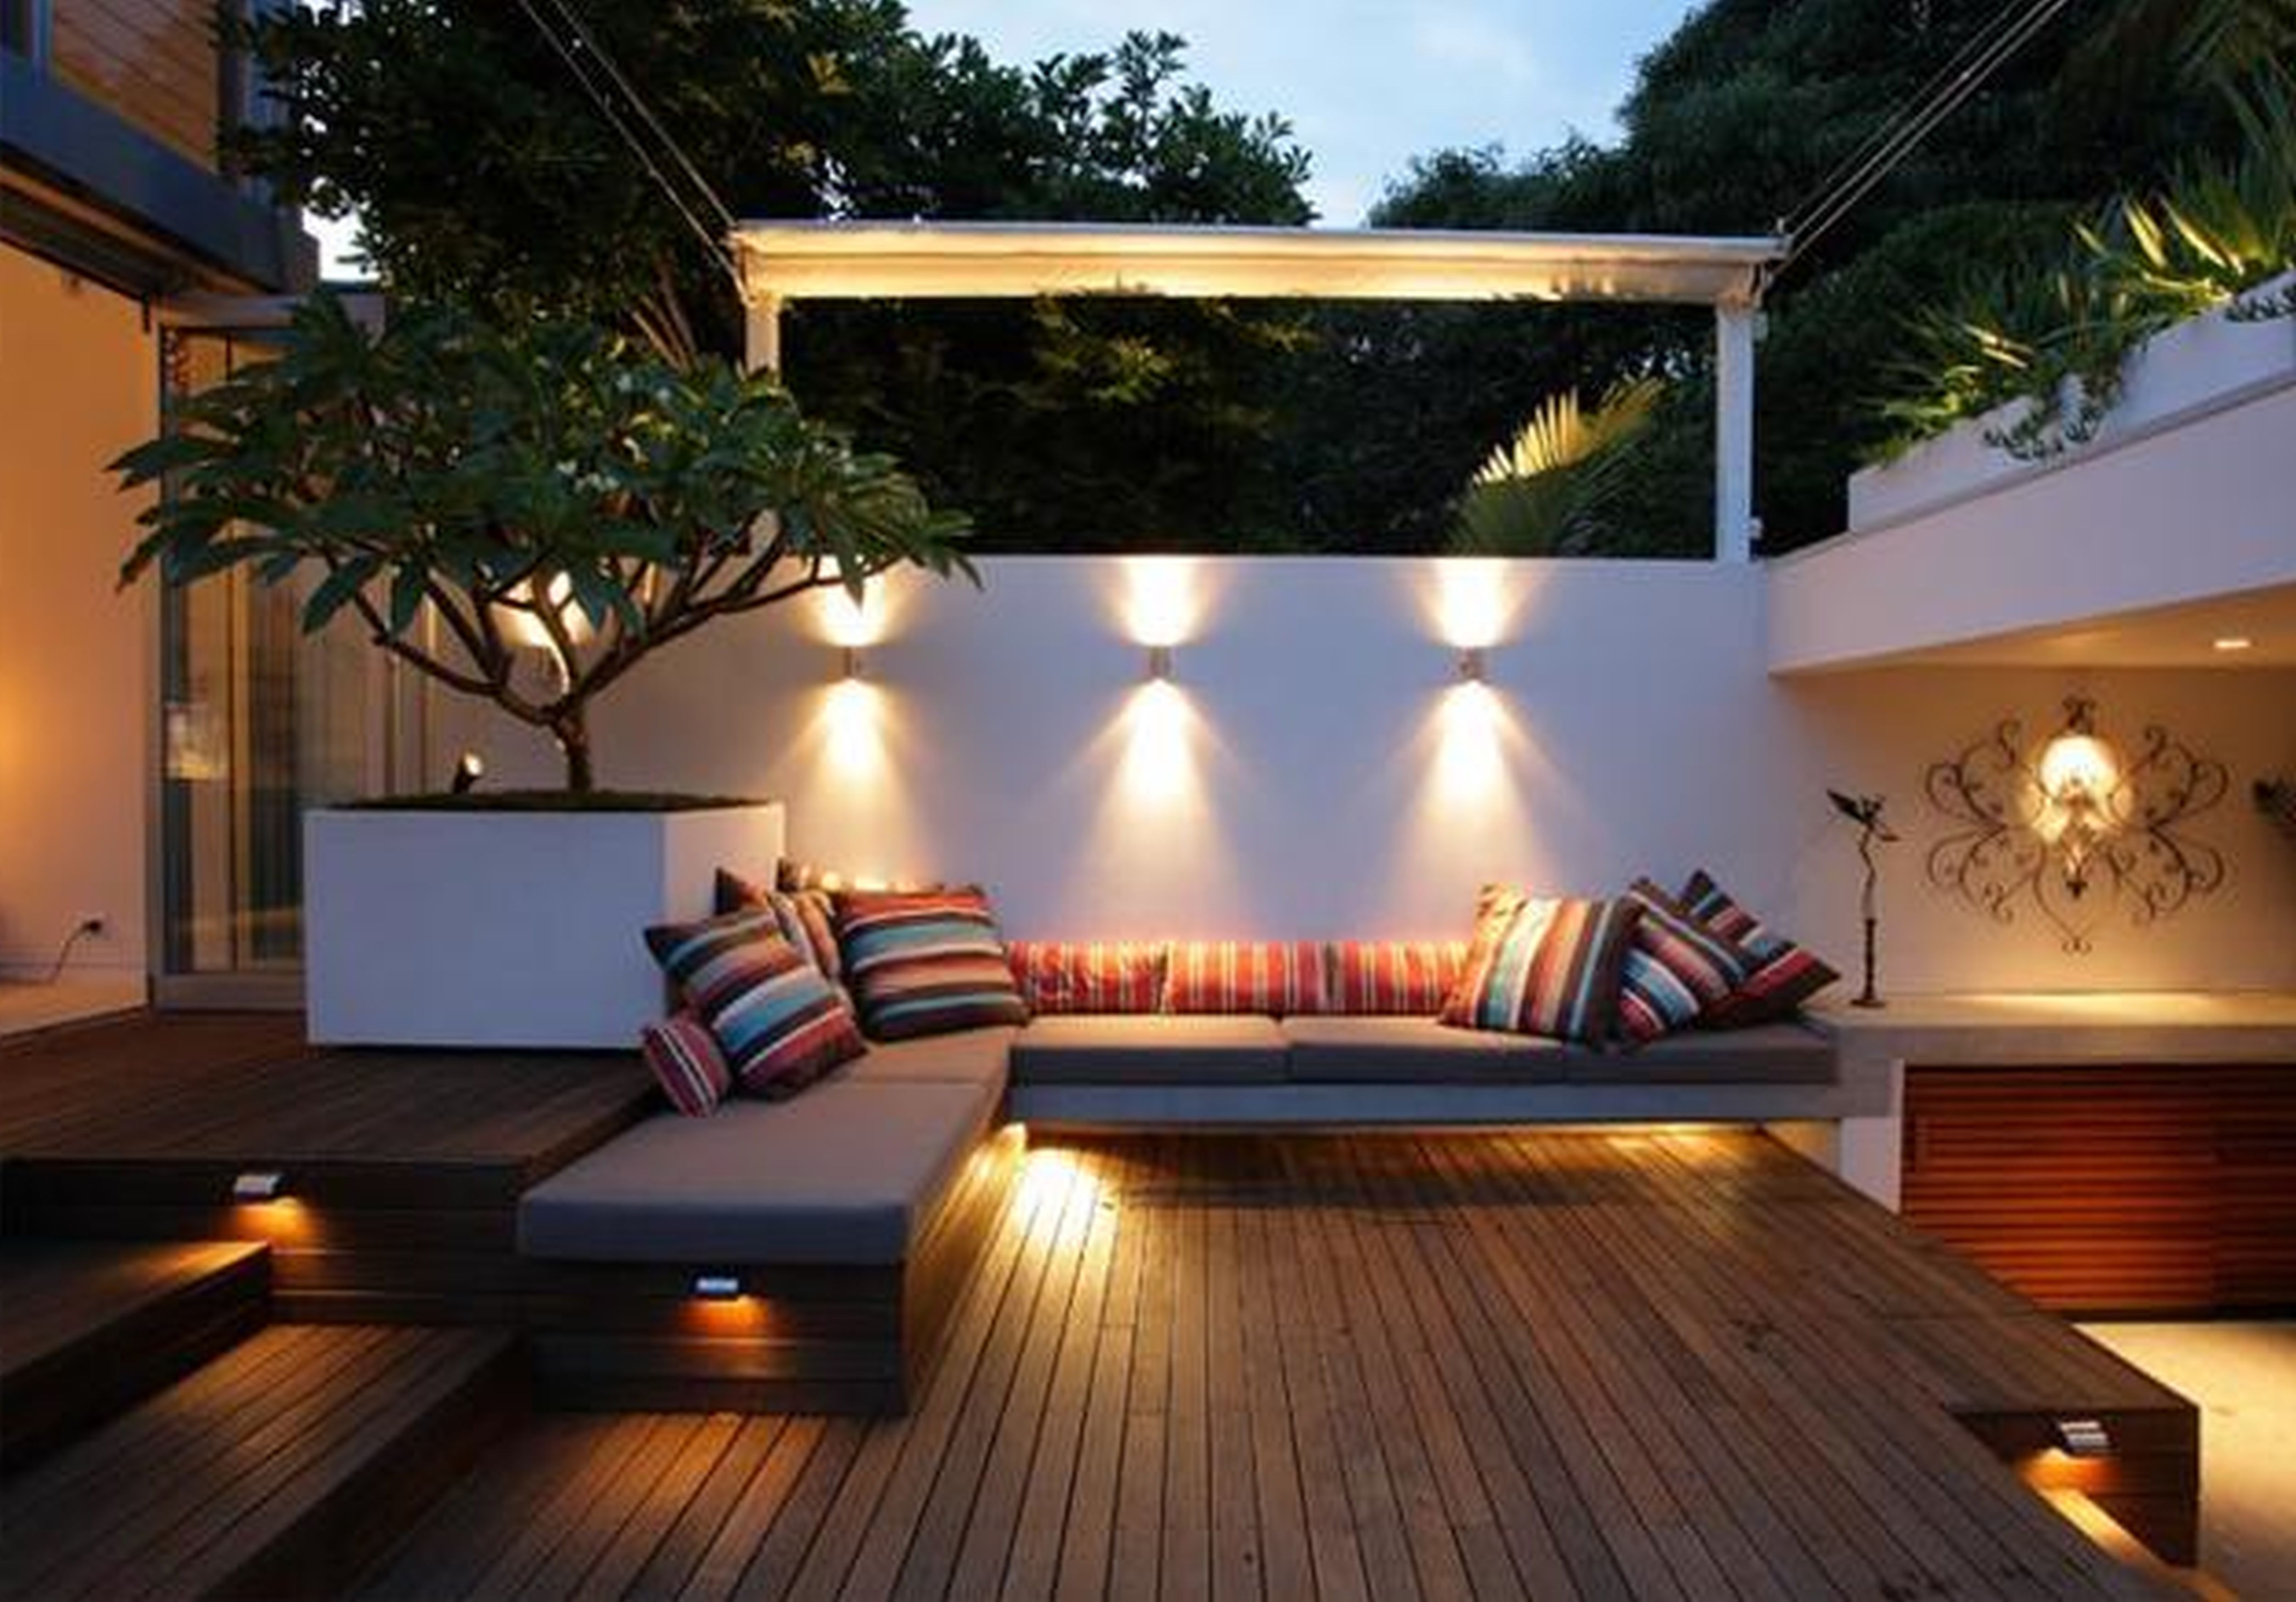 Garden Design: Garden Design With Landscaping Ideas For Backyards .